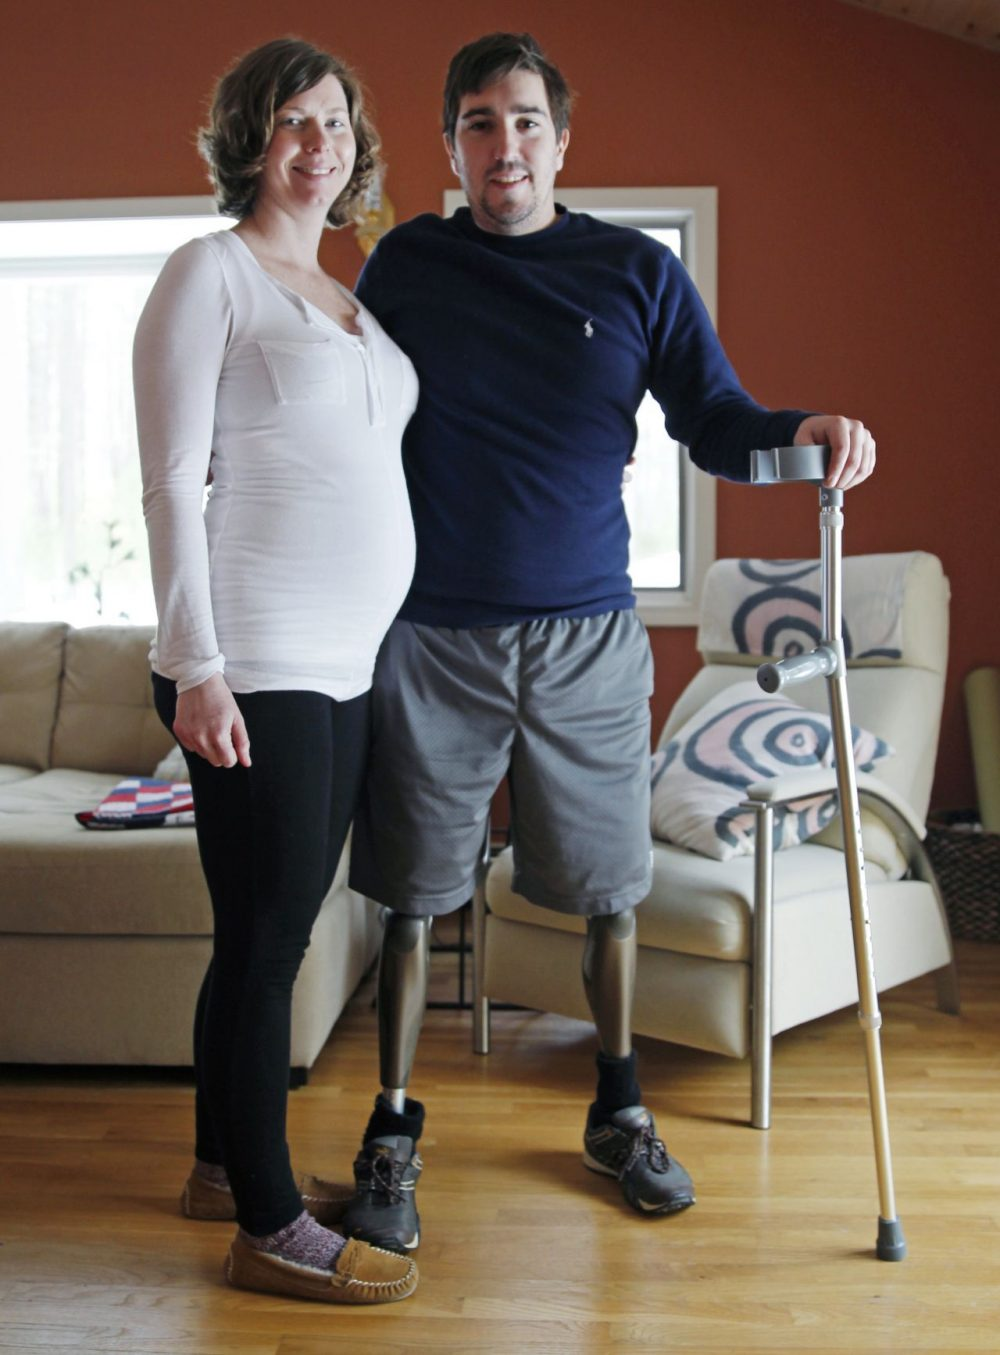 Jeff Bauman, who lost both legs in the Boston Marathon bombings, then helped authorities identify the suspects, poses with his expectant fiancé, Erin Hurley, their home in Carlisle, Mass., Friday, March 14, 2014. According to Bauman, the baby is due July 14. They don't know if it's a boy or a girl, and they want it to be a surprise. The two were engaged in February. (Charles Krupa/AP)